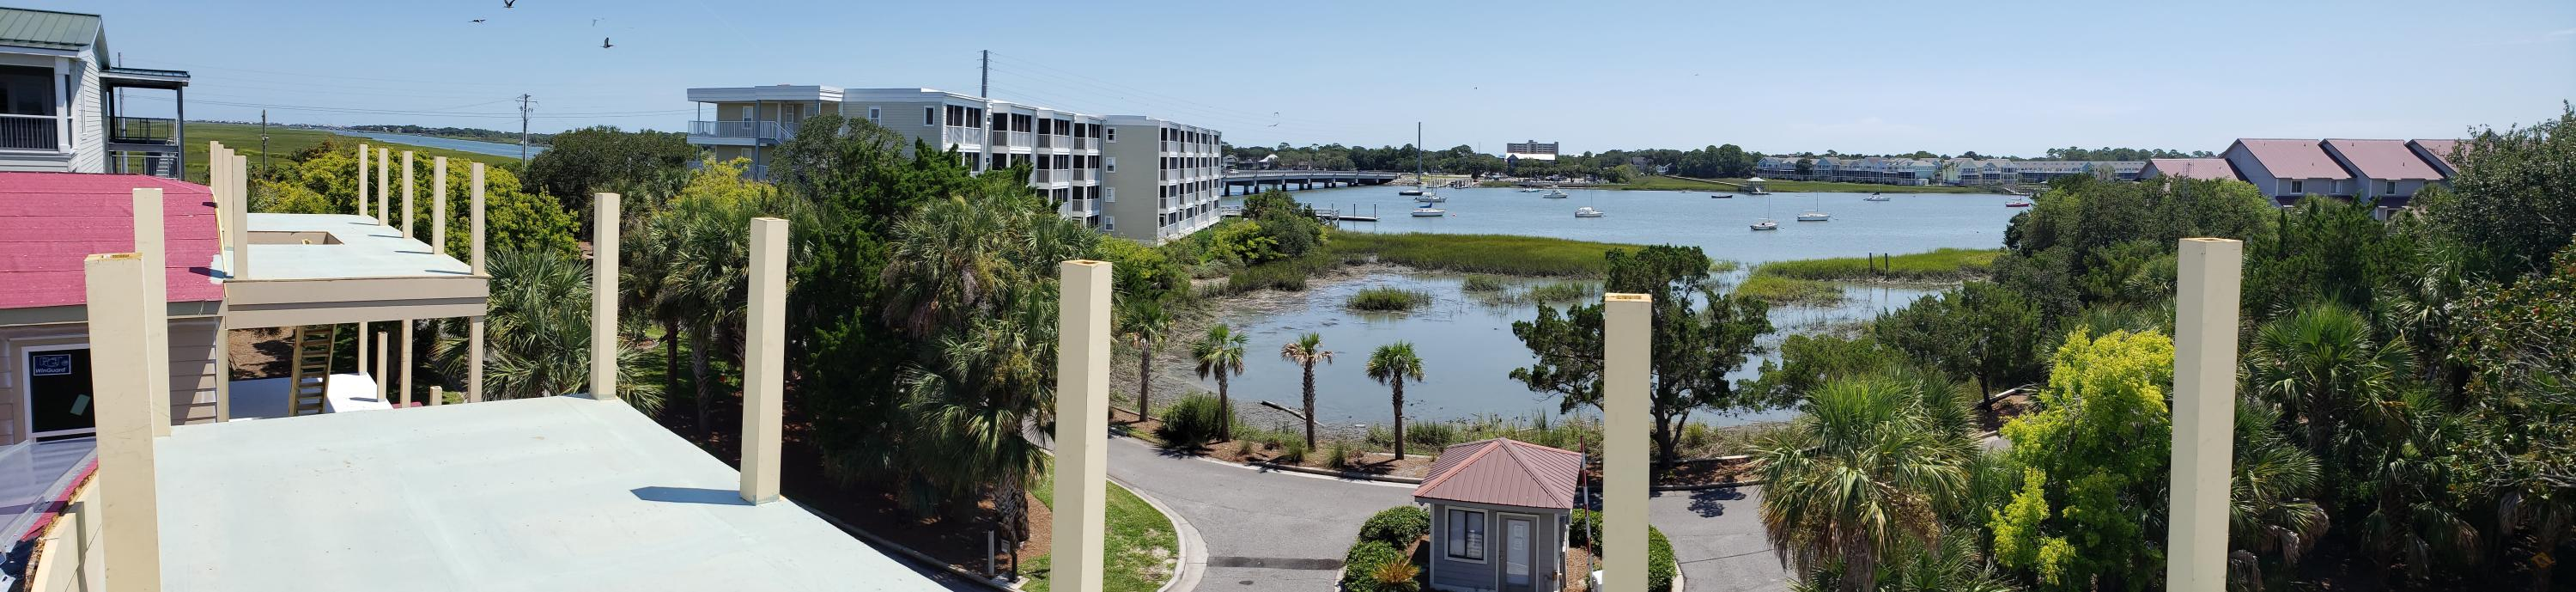 Mariners Cay Homes For Sale - 16 Mariners Cay, Folly Beach, SC - 15